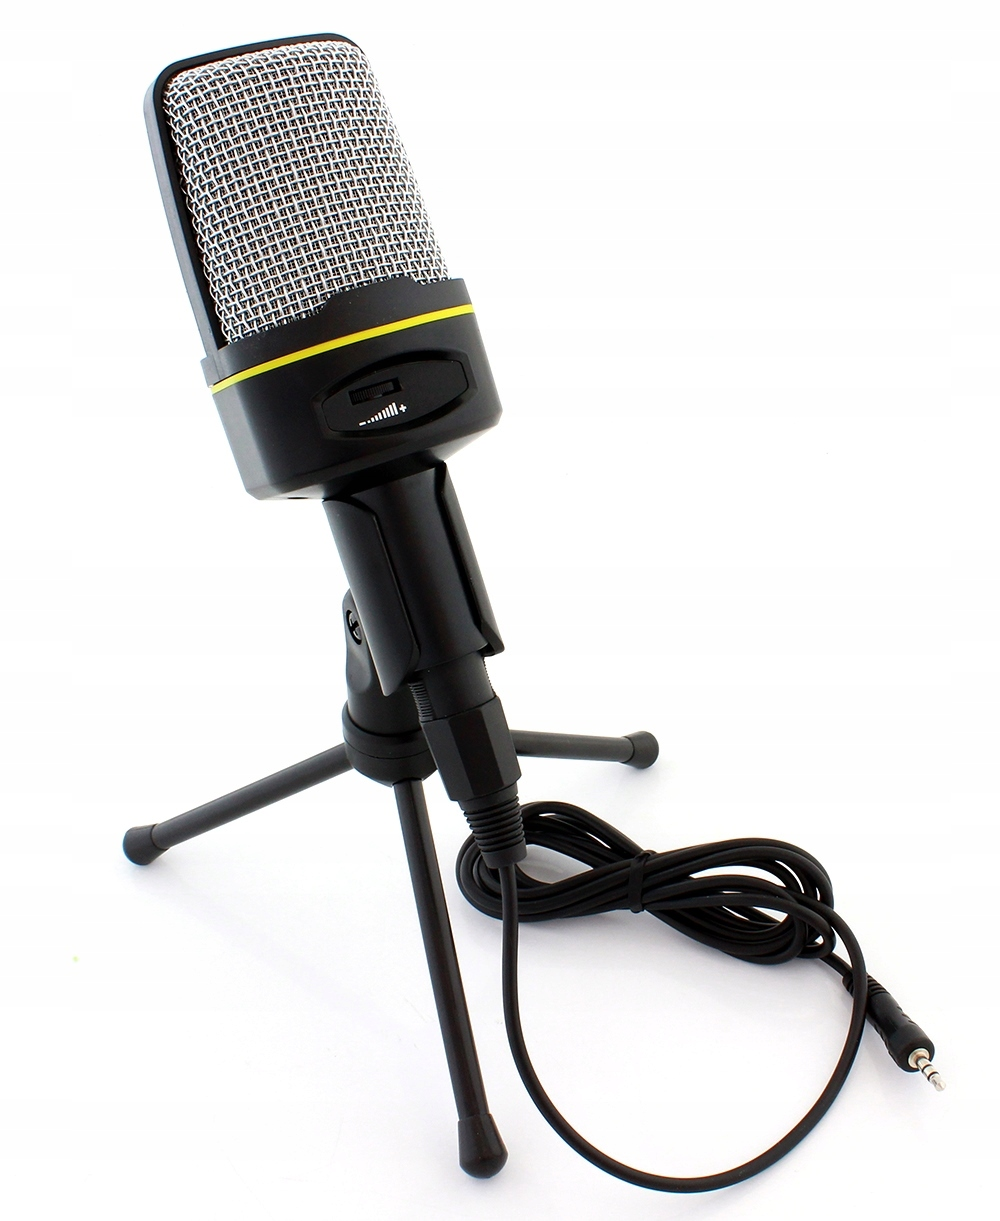 Item CONDENSER MICROPHONE WITH STAND HOLDER FOR STUDIO